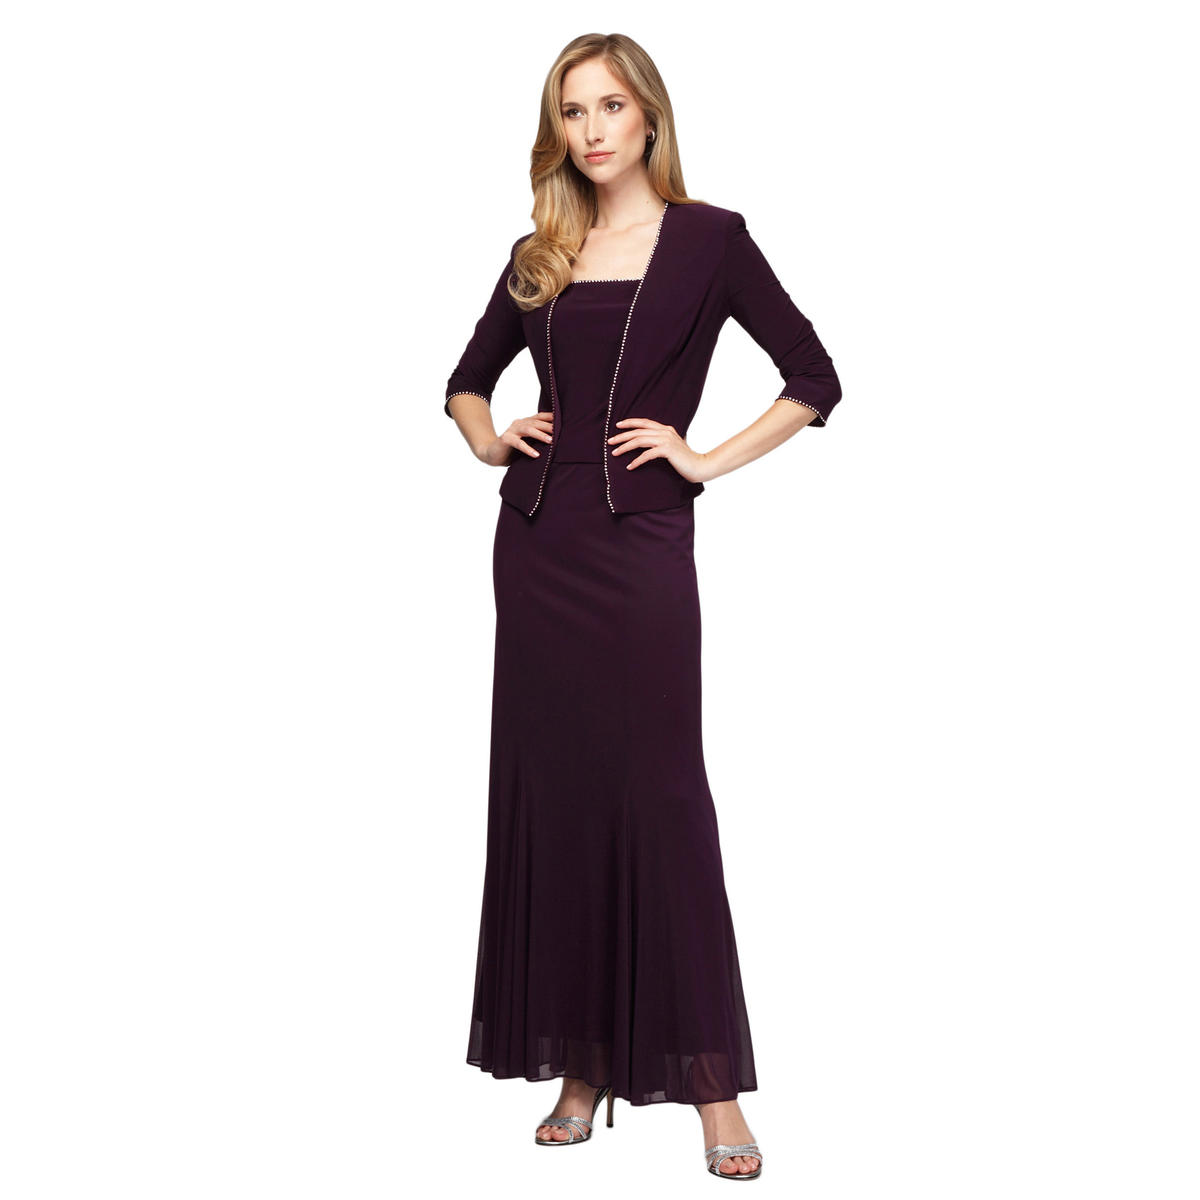 ALEX APPAREL GROUP INC - Sleeveless Chiffon Gown with Jacket